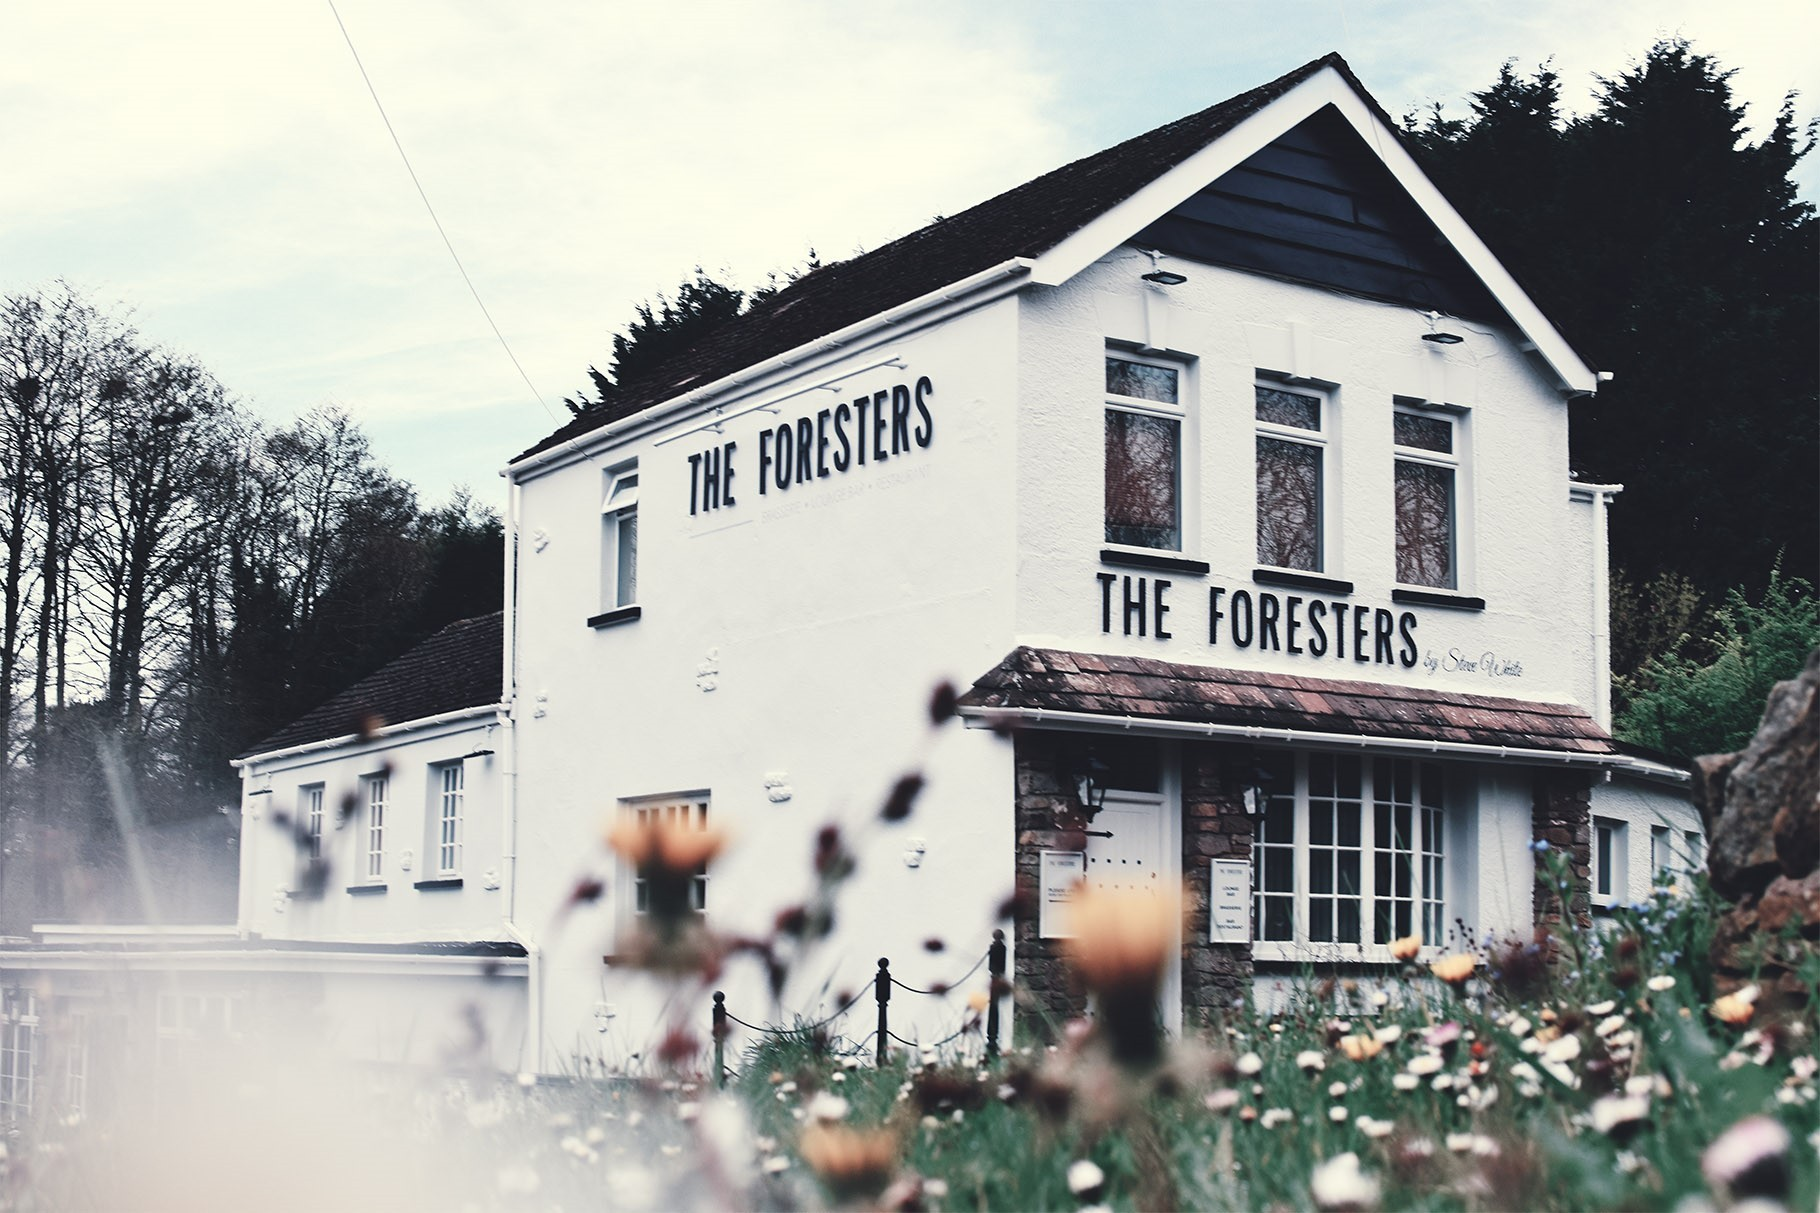 VENUE: The Foresters on Chepstow Road in Newport